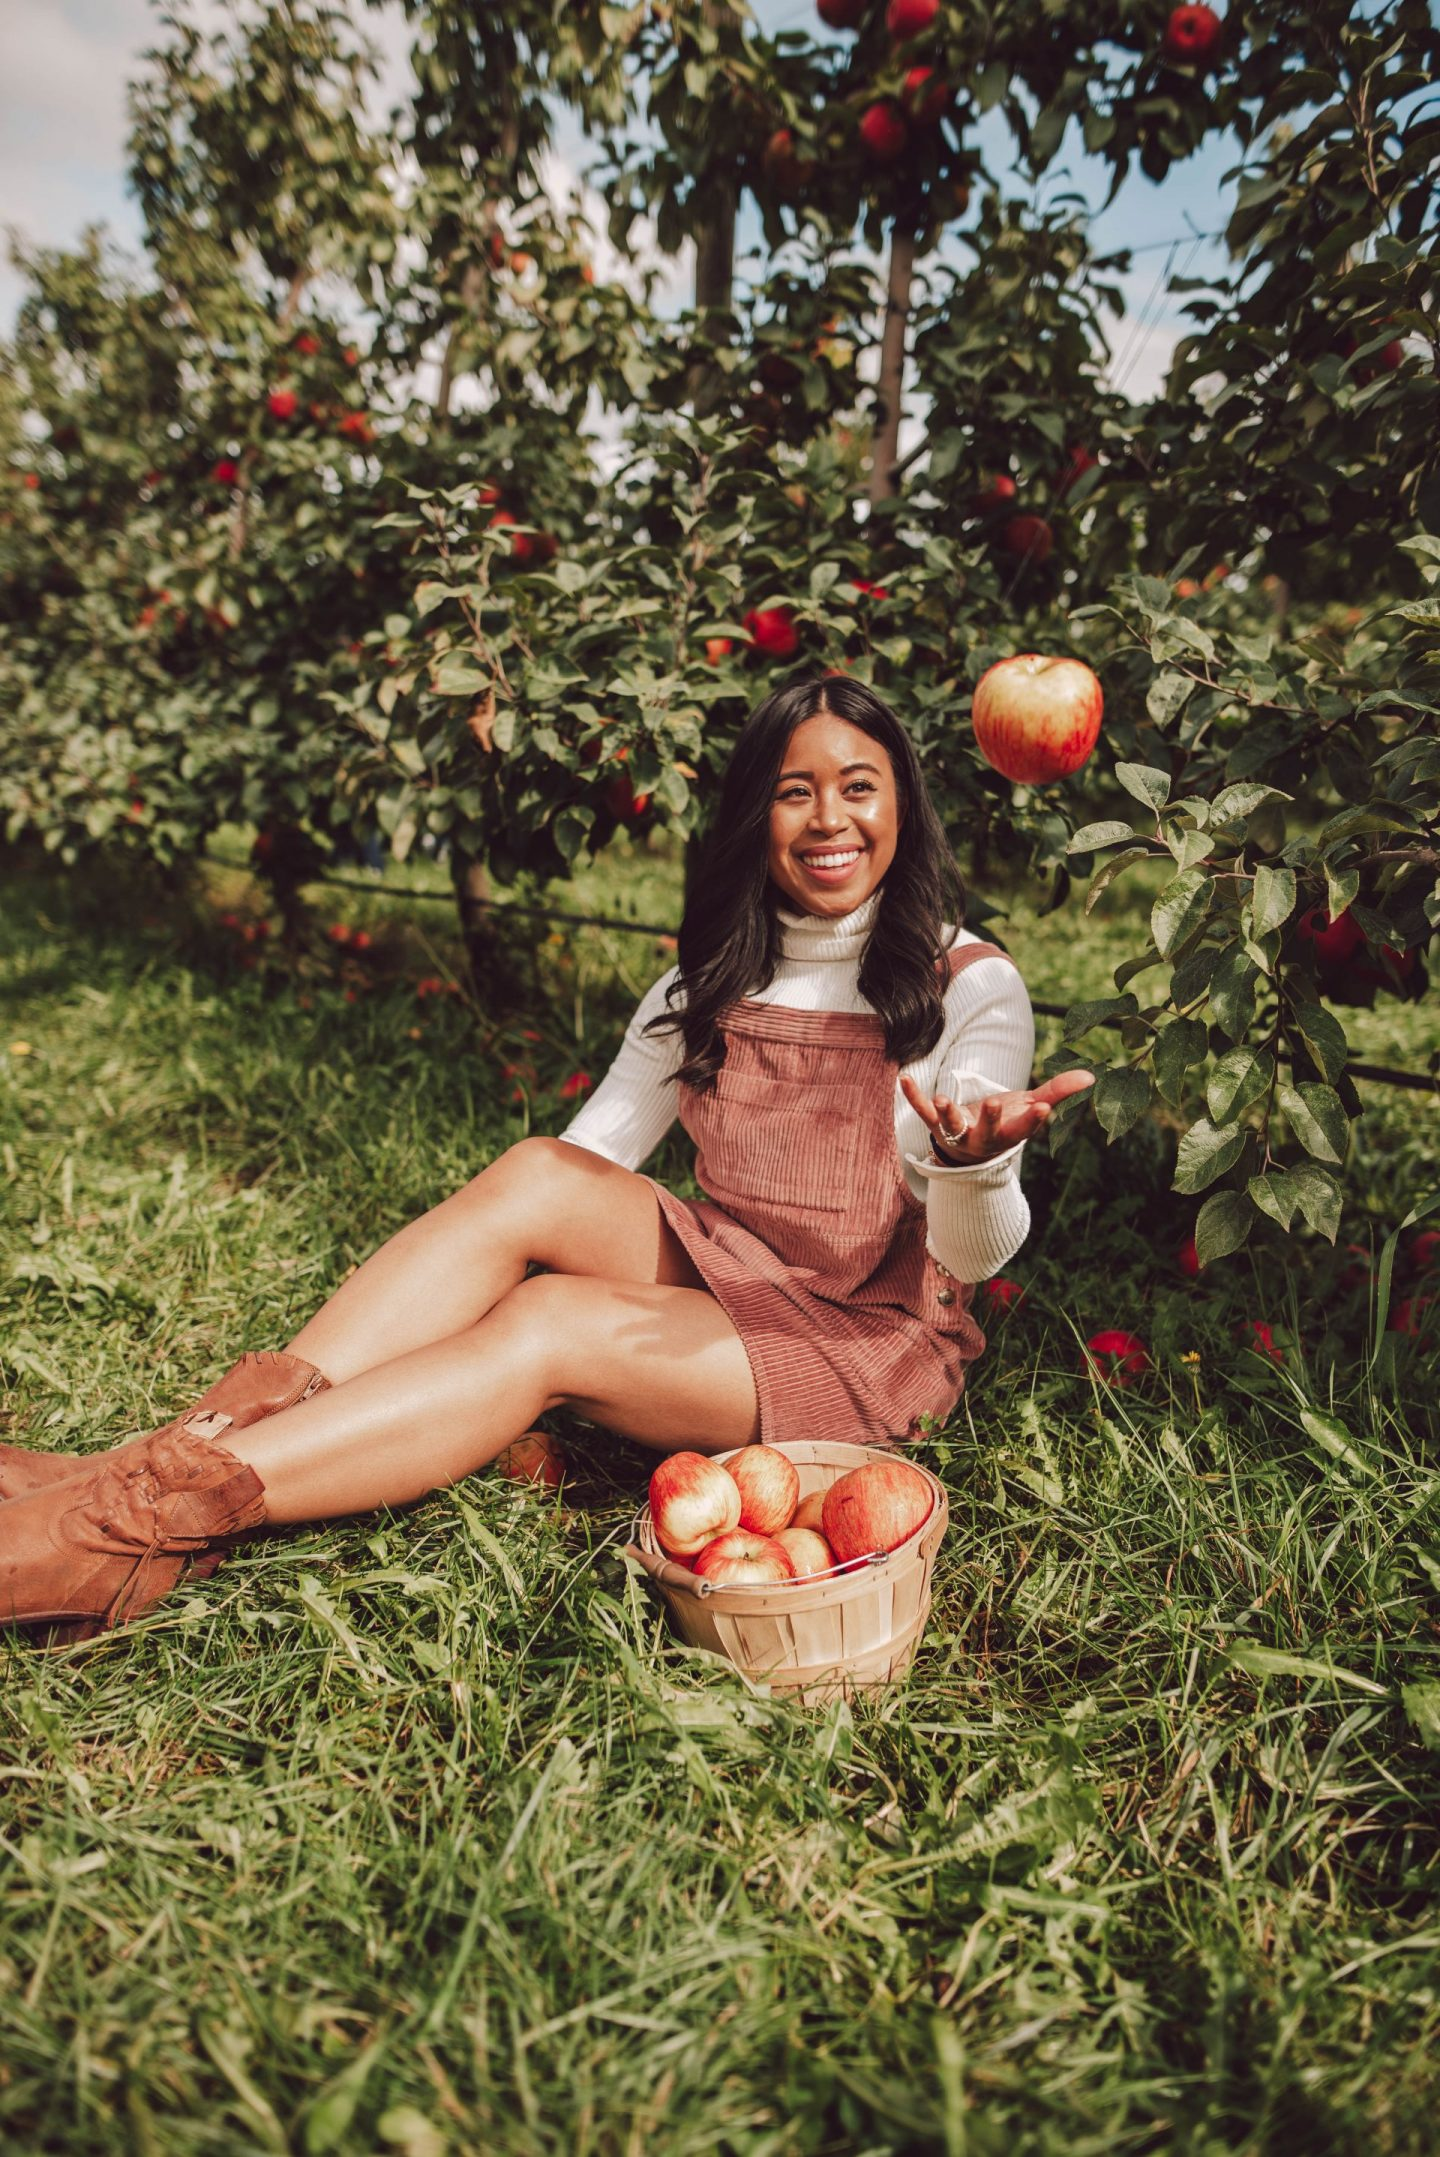 Bellewood Farms in Lynden, WA - how to pose at an apple orchard - apple picking posing ideas - apple picking poses -  fall activities - apple picking photography - apple picking outfits